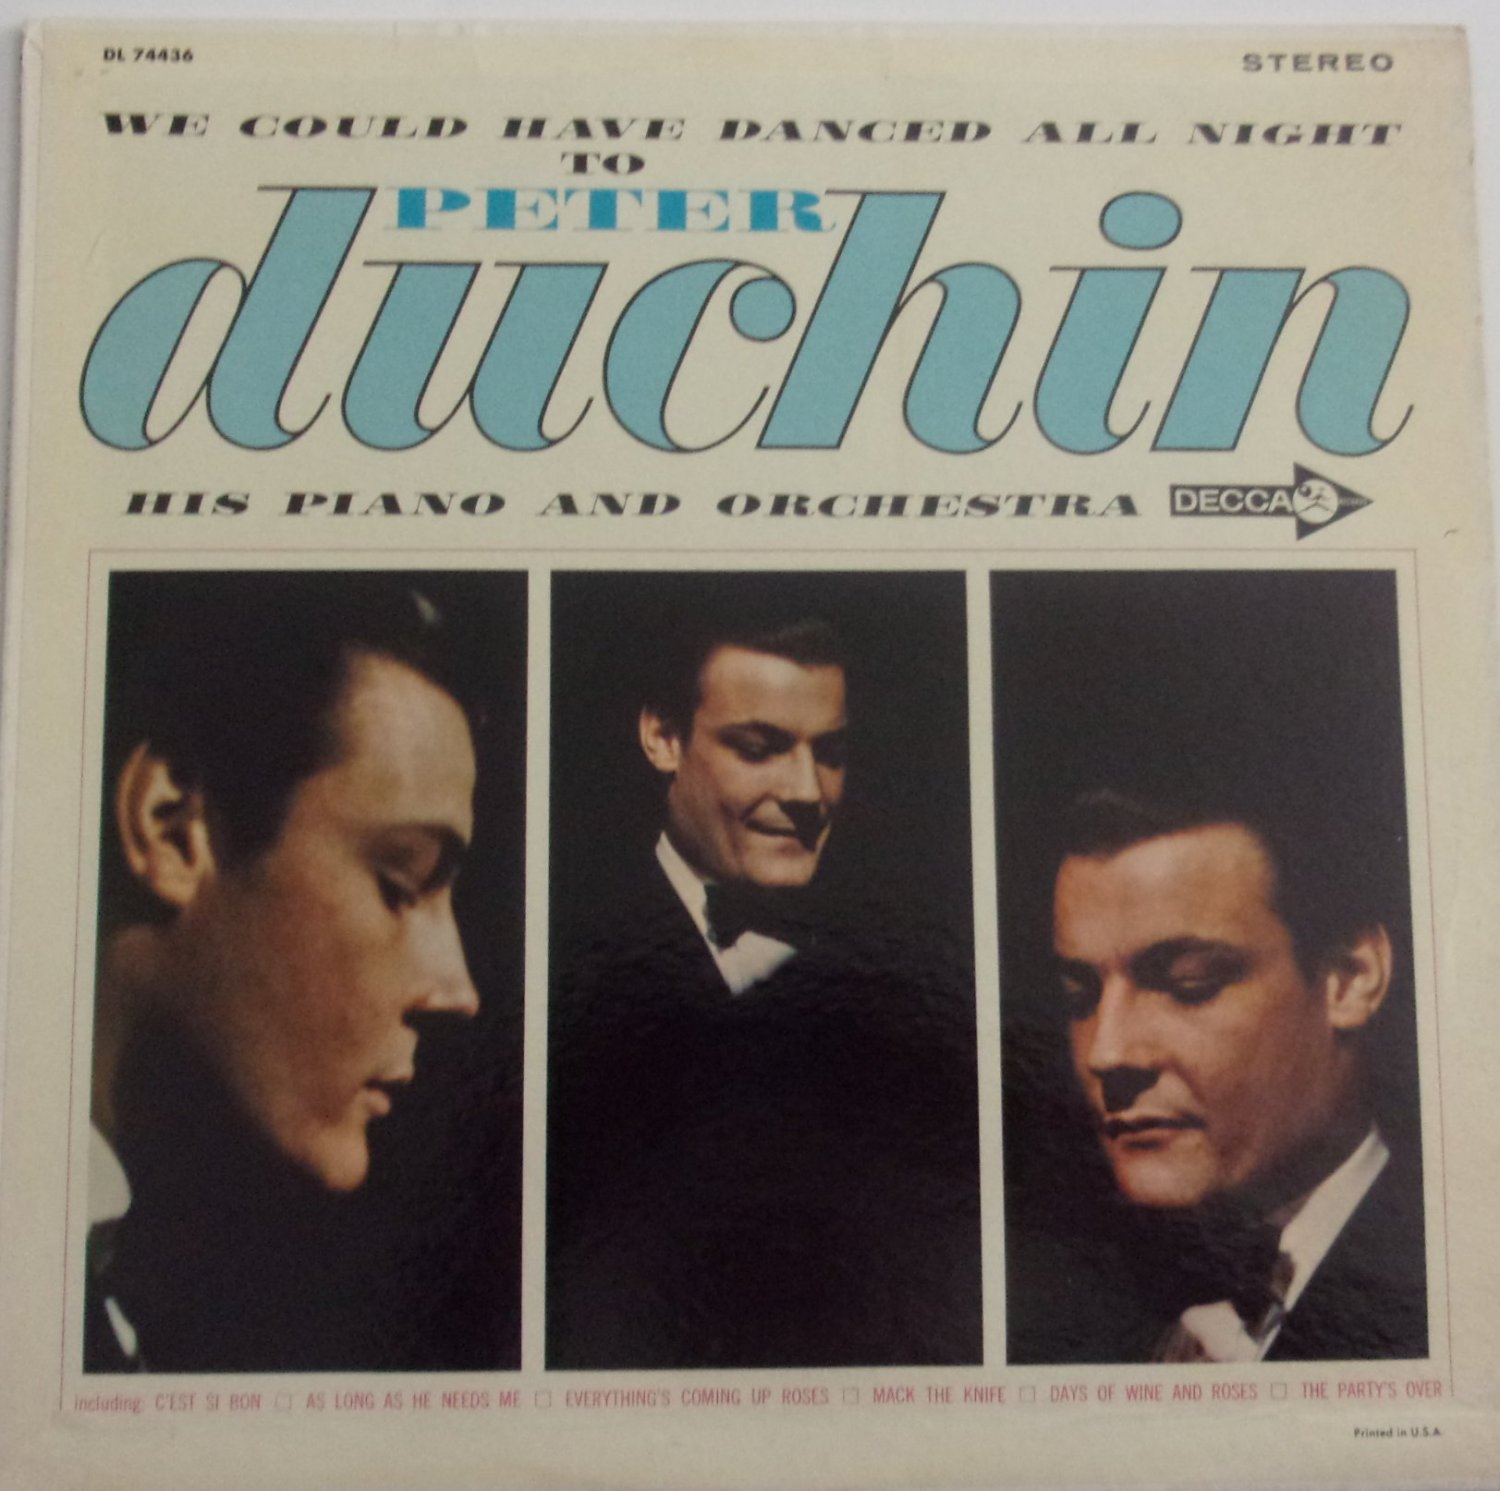 Peter Duchin We Could Have Danced All Night LP DL 74436 Pop